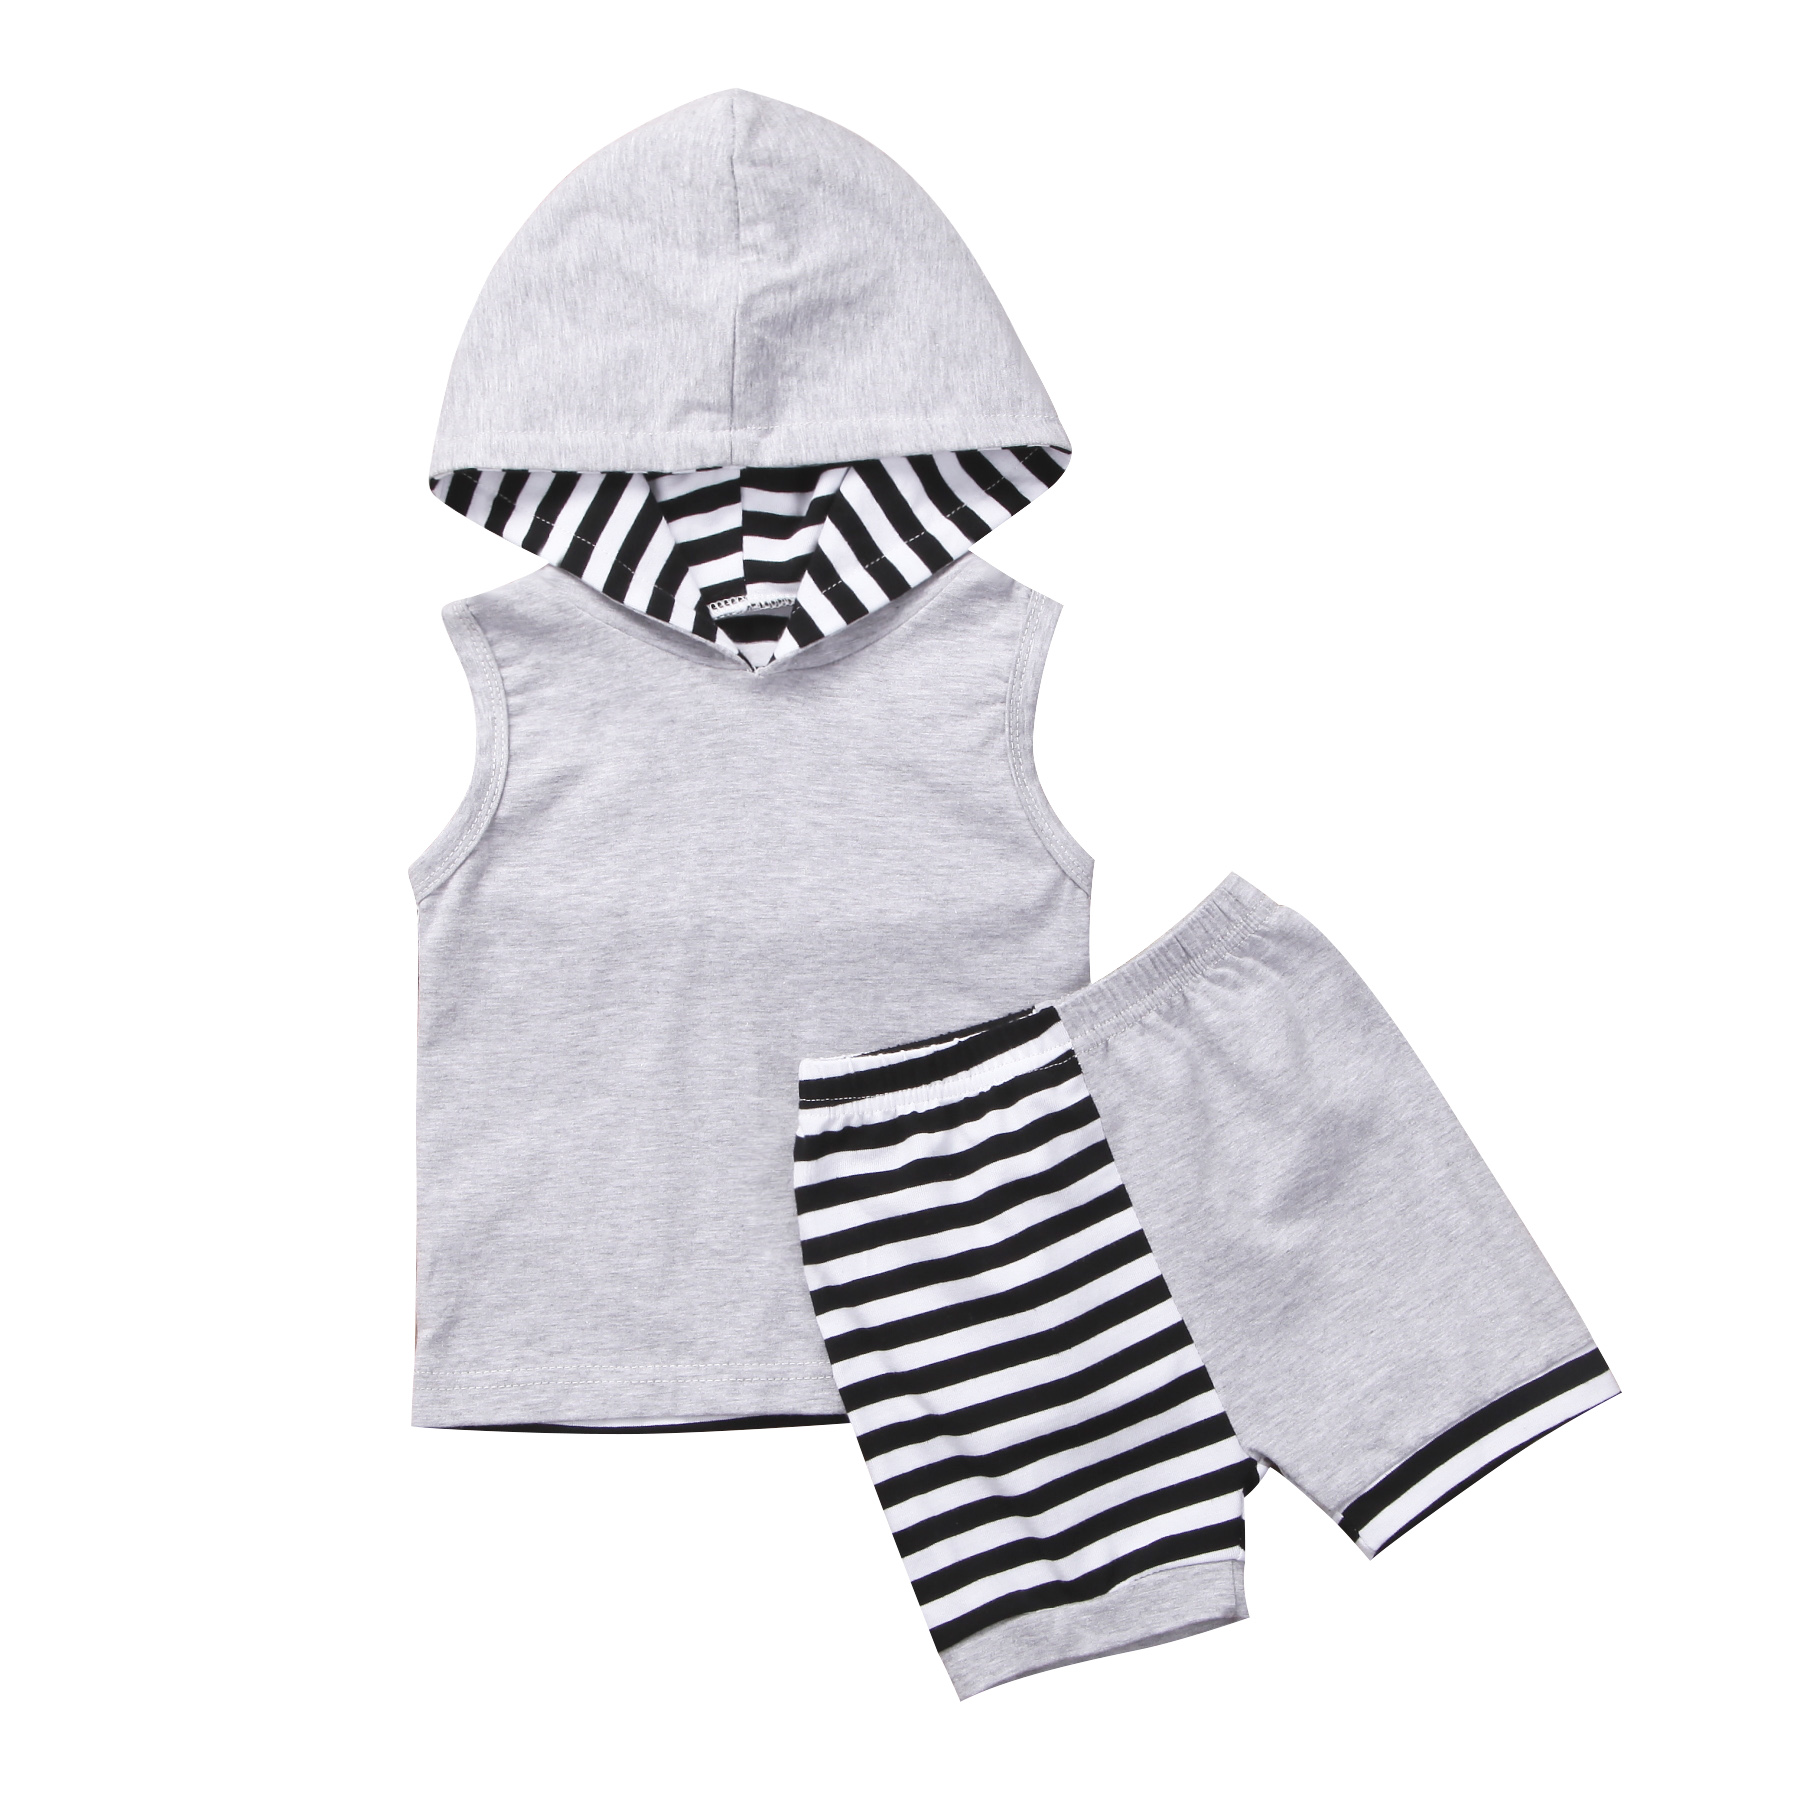 New Sport Toddler Infant Baby Boy Clothes Hoo Sleeveless Top